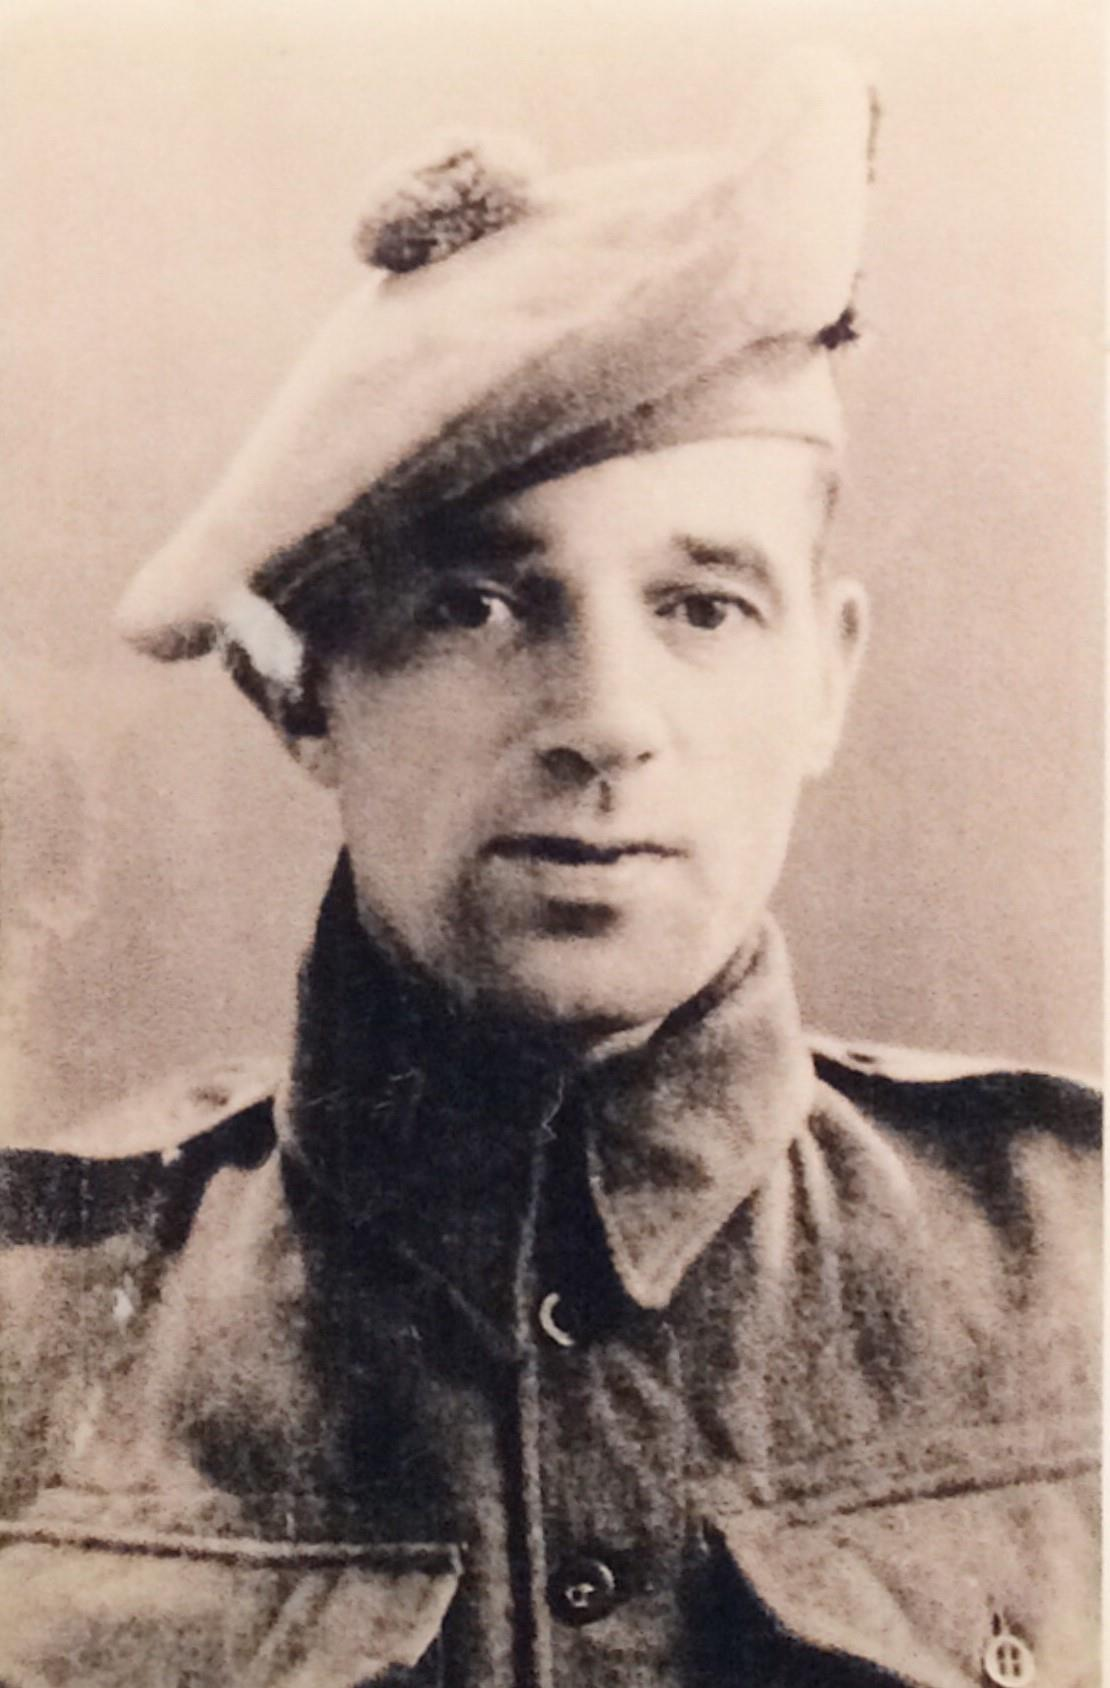 Private David McKellar - Mielje - LRNL225